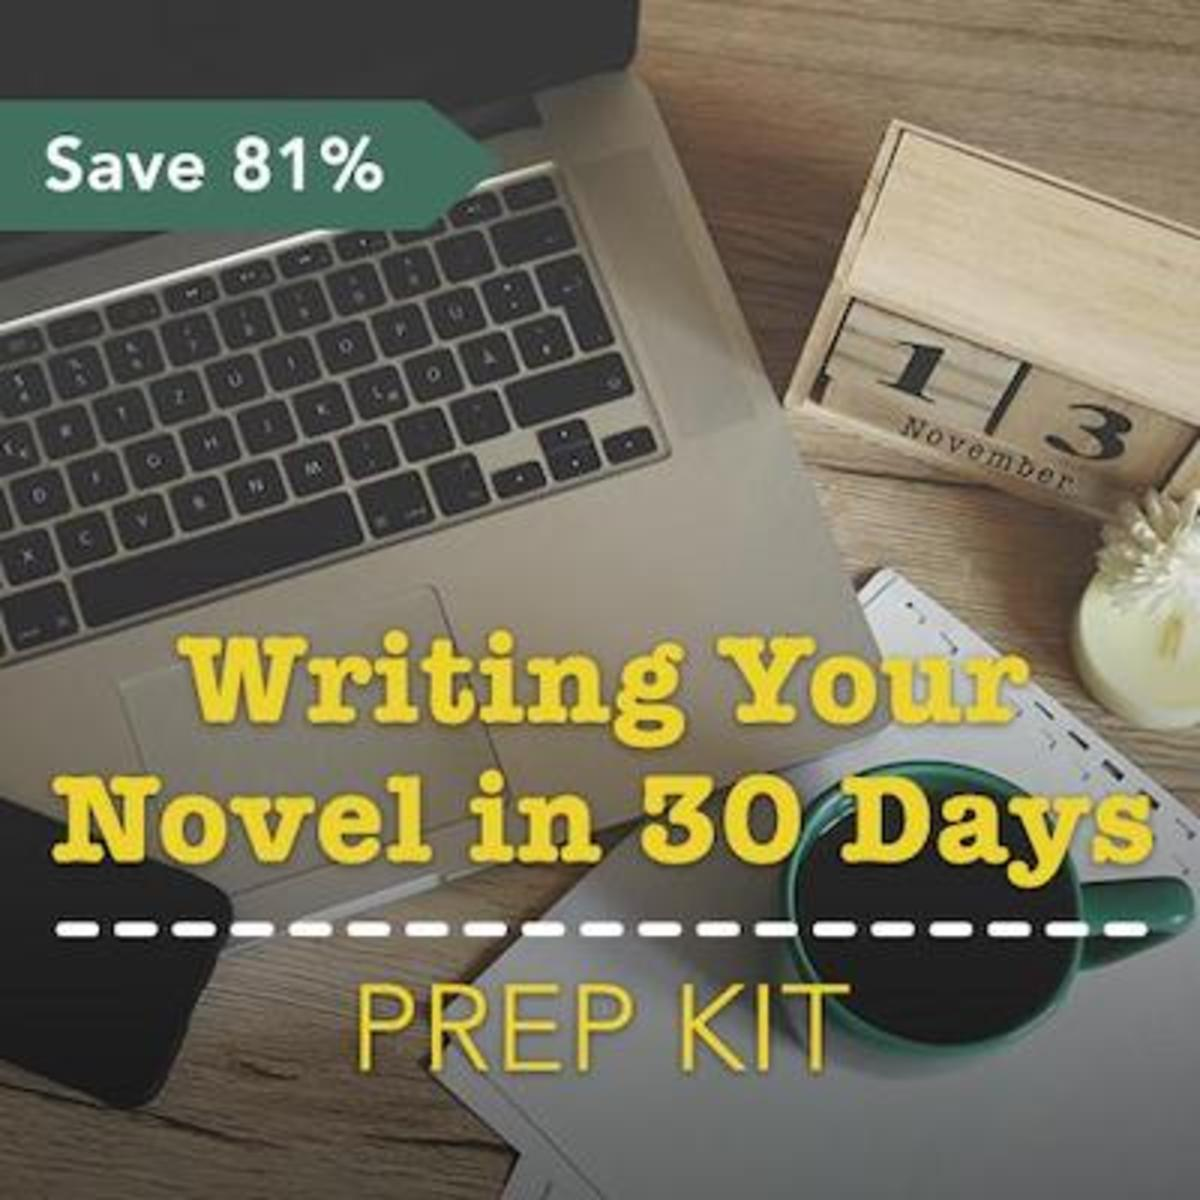 Are you ready to draft your novel in 30 days? Writer's Digest has you covered with a new kit that includes everything you need to prepare for your upcoming writing endeavors.